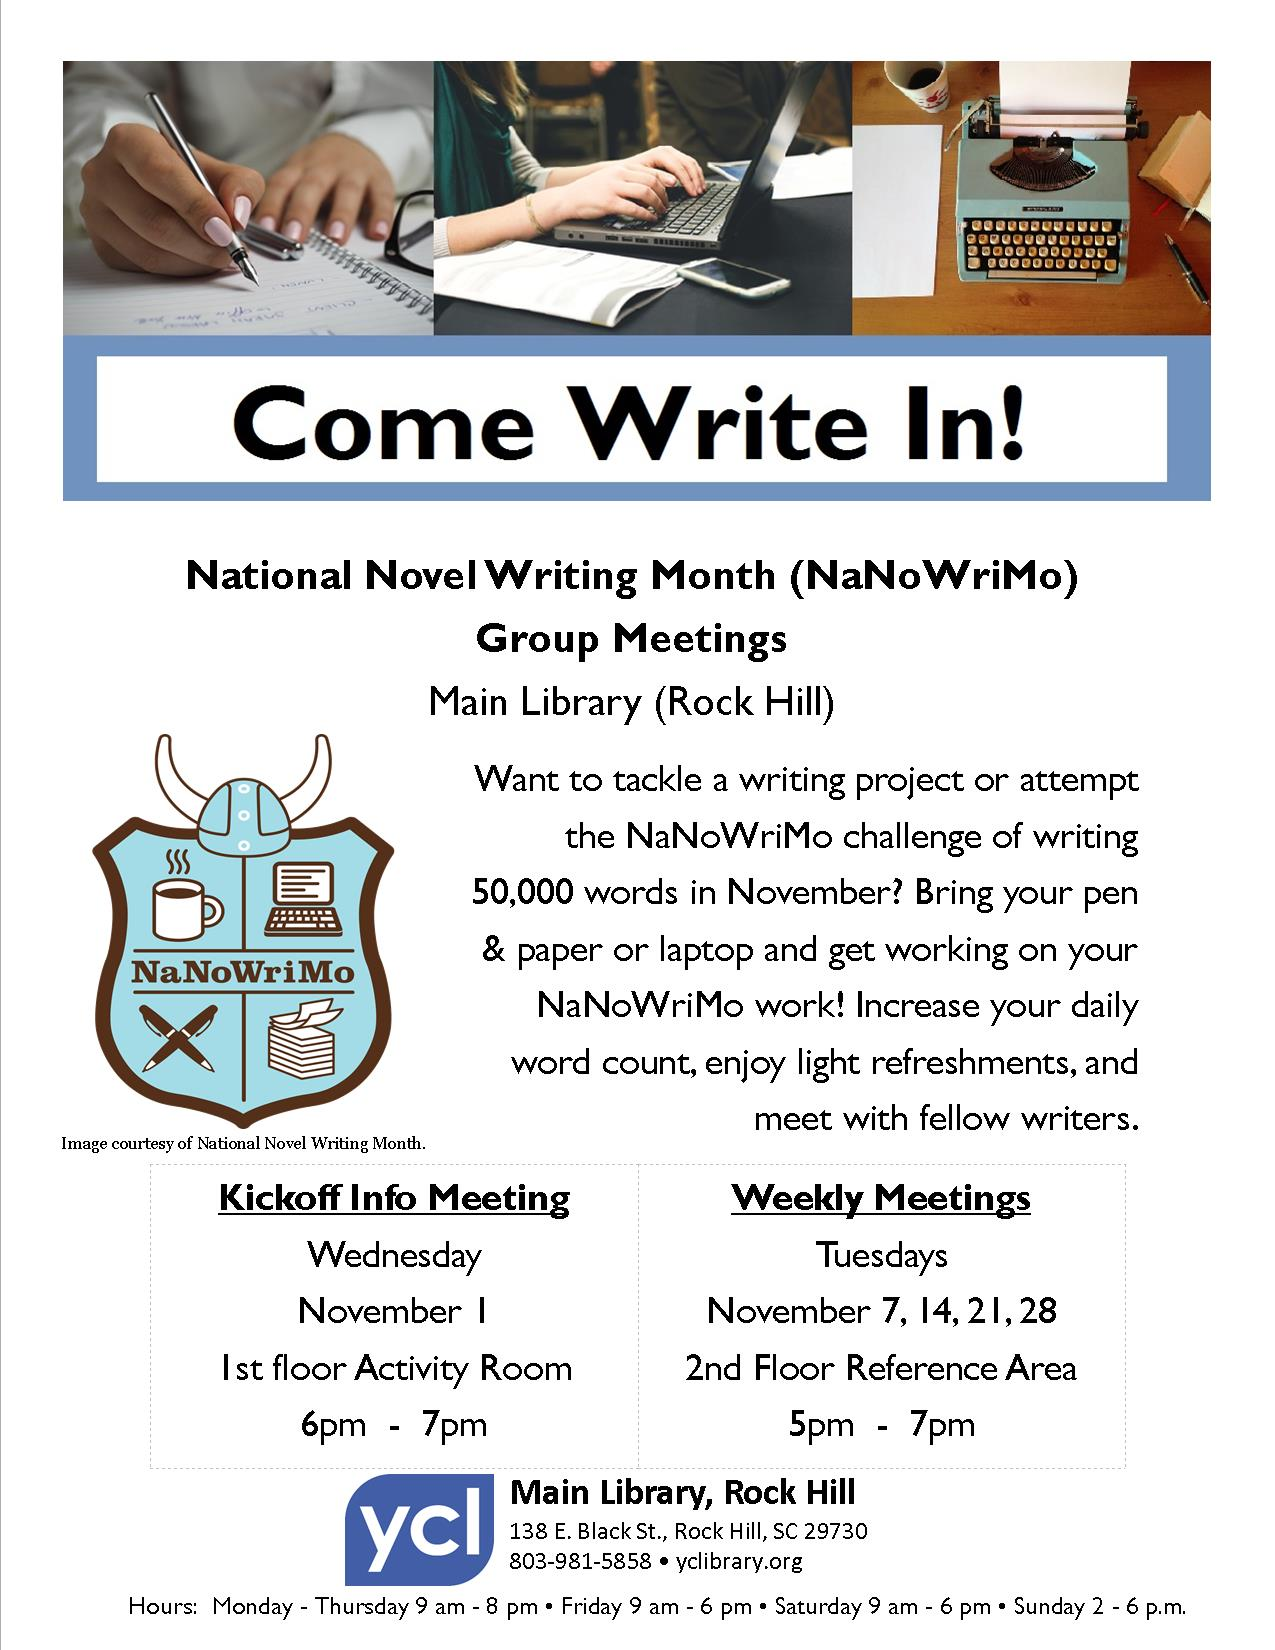 Flyer for Come Write In! event